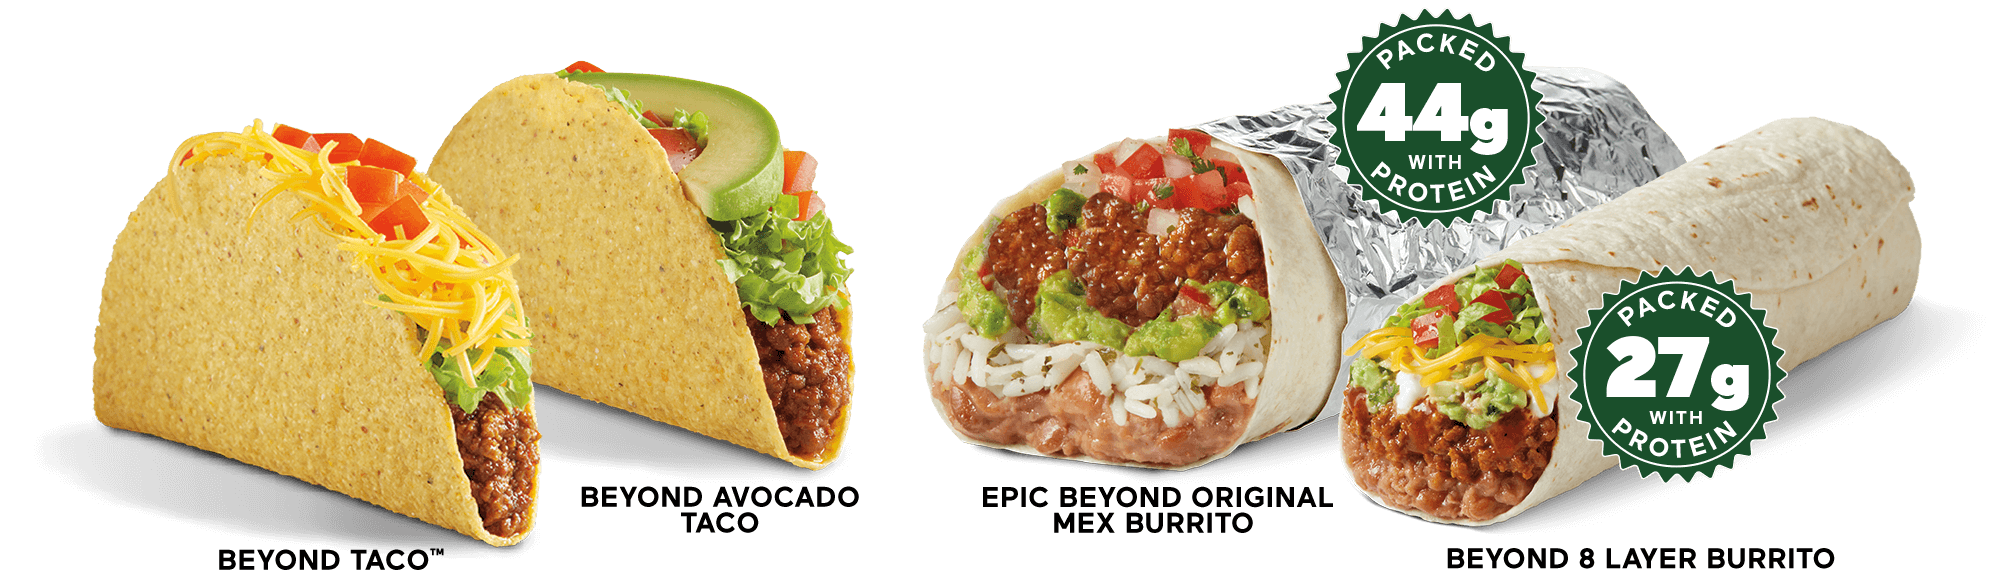 THE FUTURE OF TACOS AND BURRITOS IS HERE